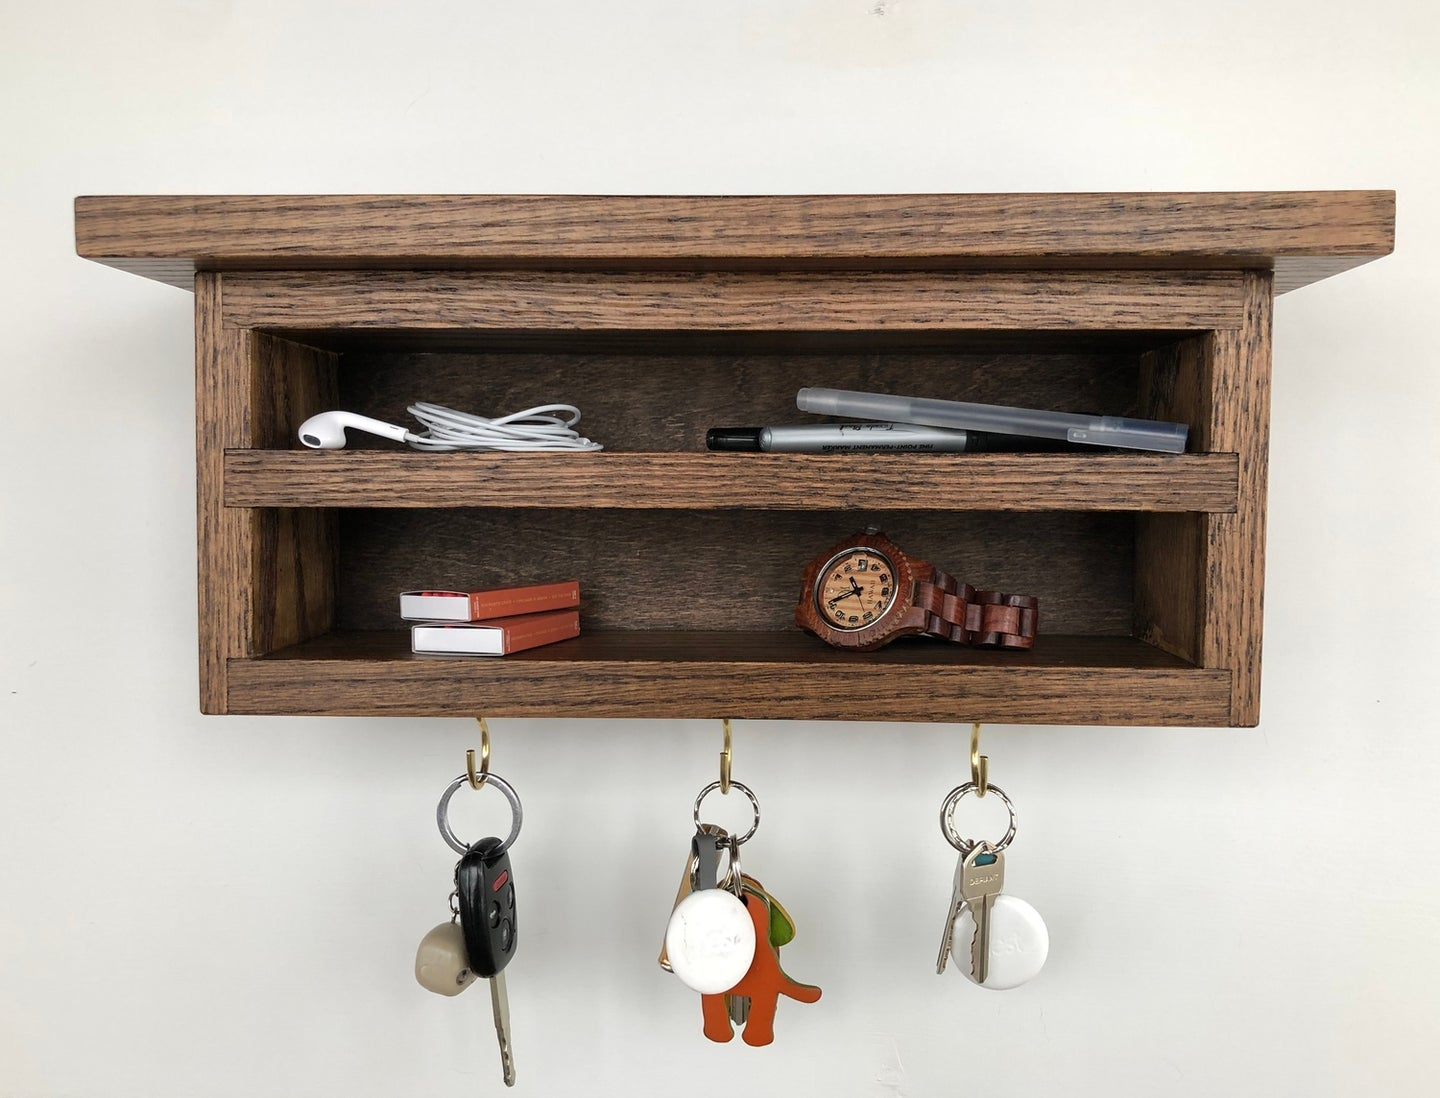 a small oak shelf key organizer cabinet hung with a French cleat so it appears to float on the wall